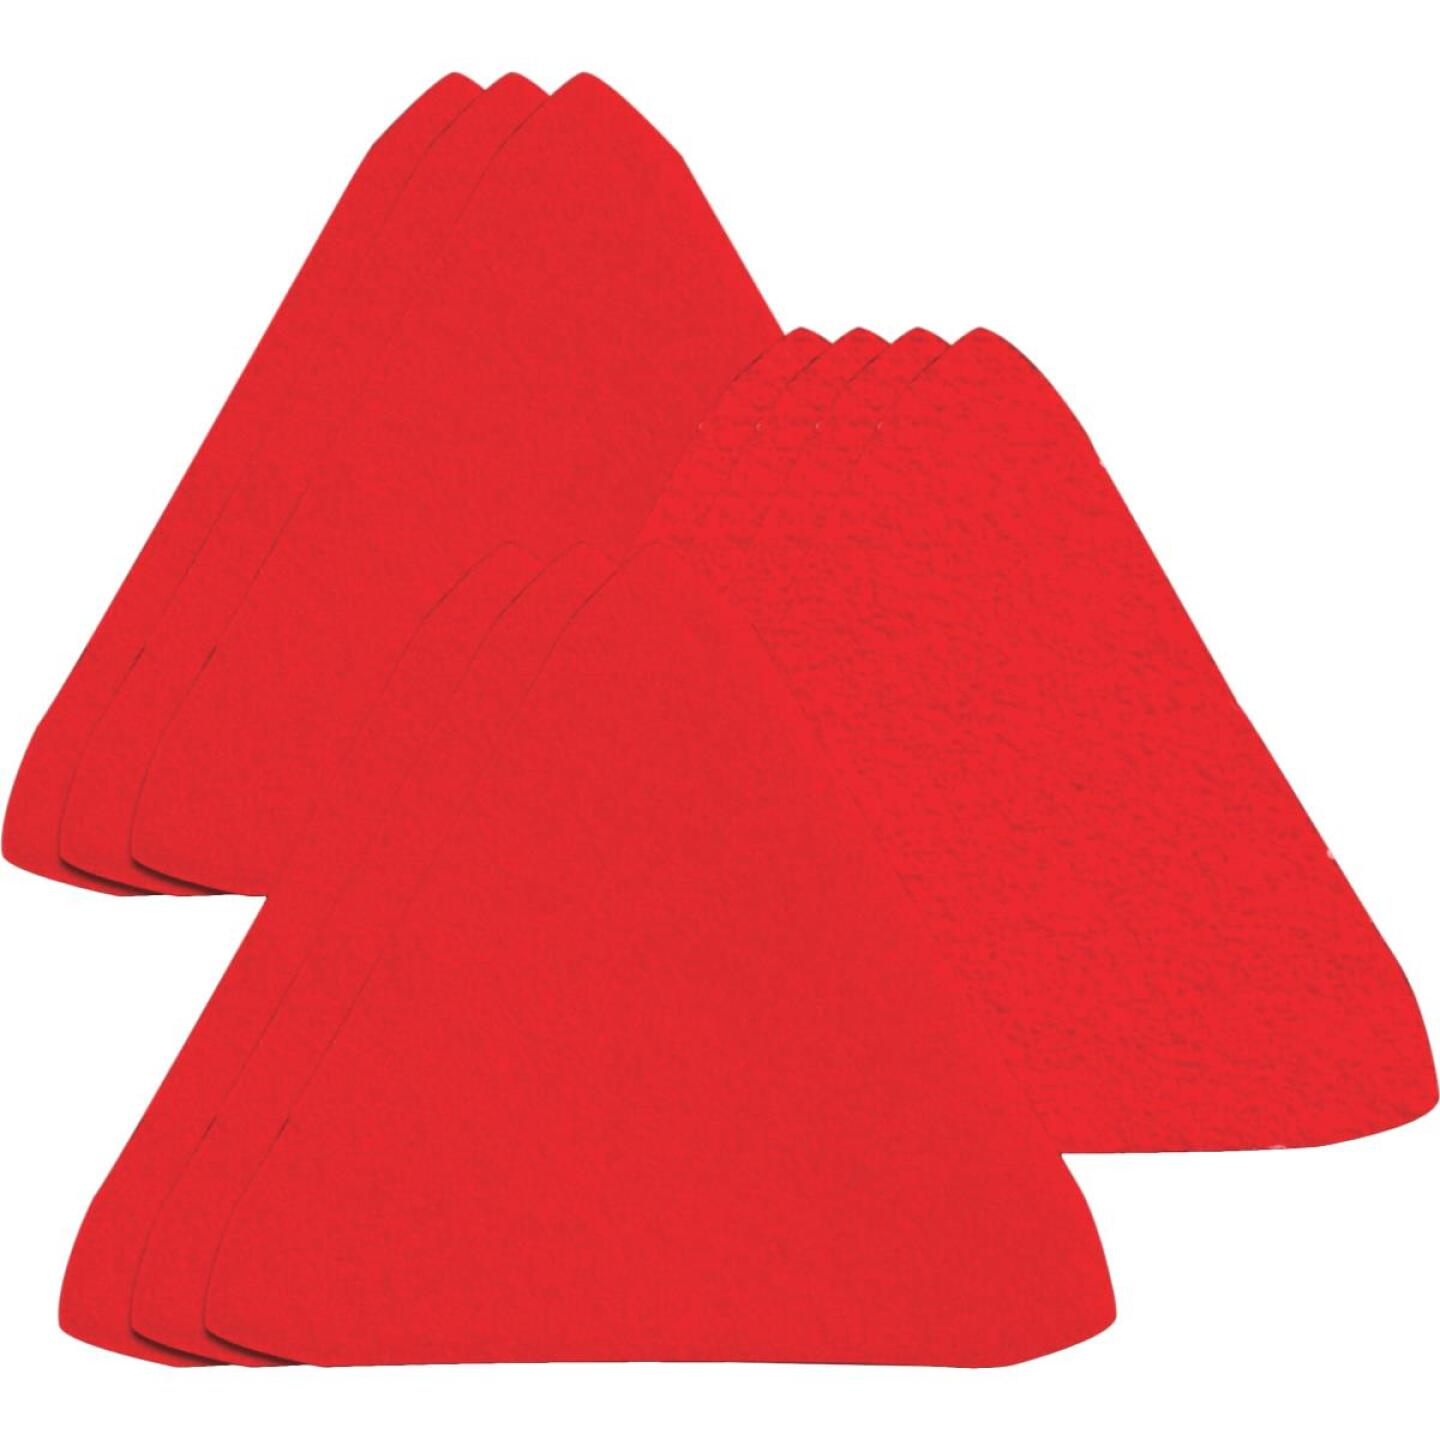 Diablo Assorted Triangle Sandpaper (10-Pack) Image 1